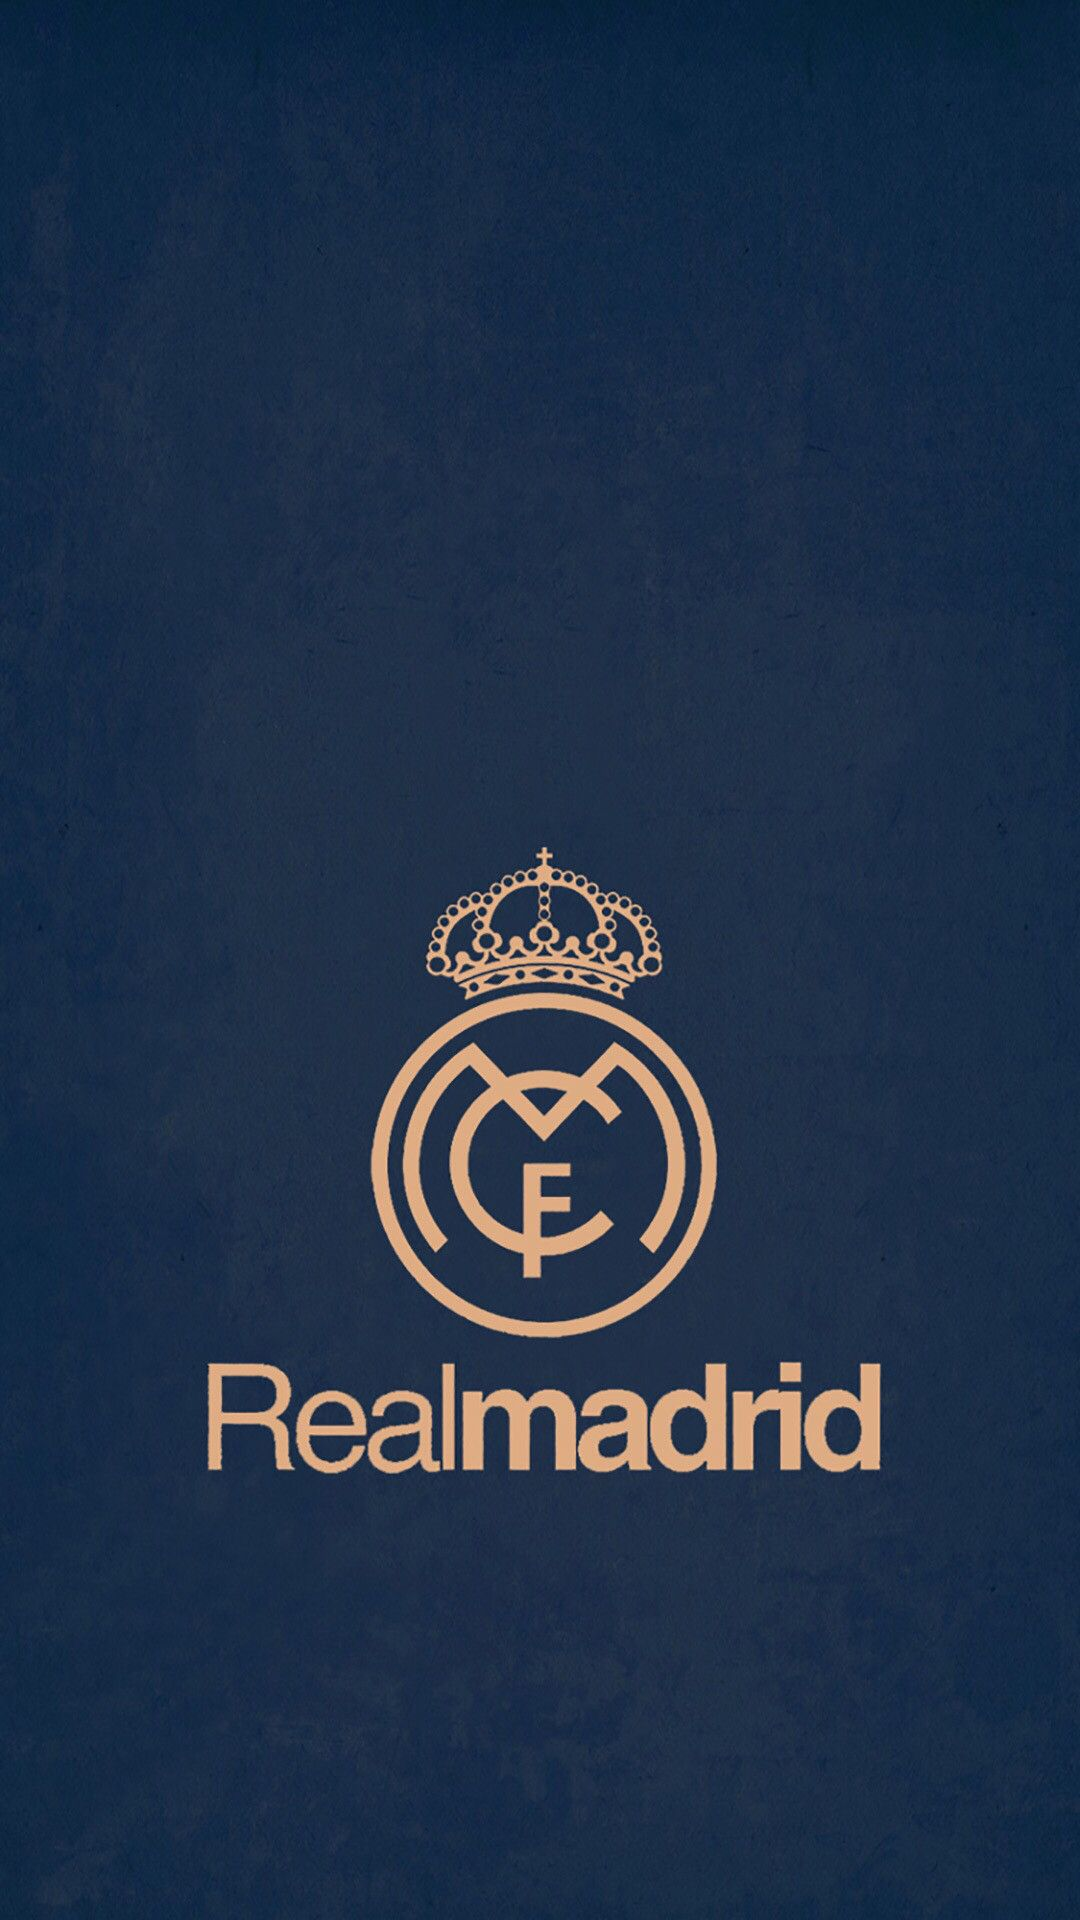 Real Madrid Wallpaper For Phone Hd Football In 2020 Real Madrid Wallpapers Madrid Wallpaper Real Madrid Football